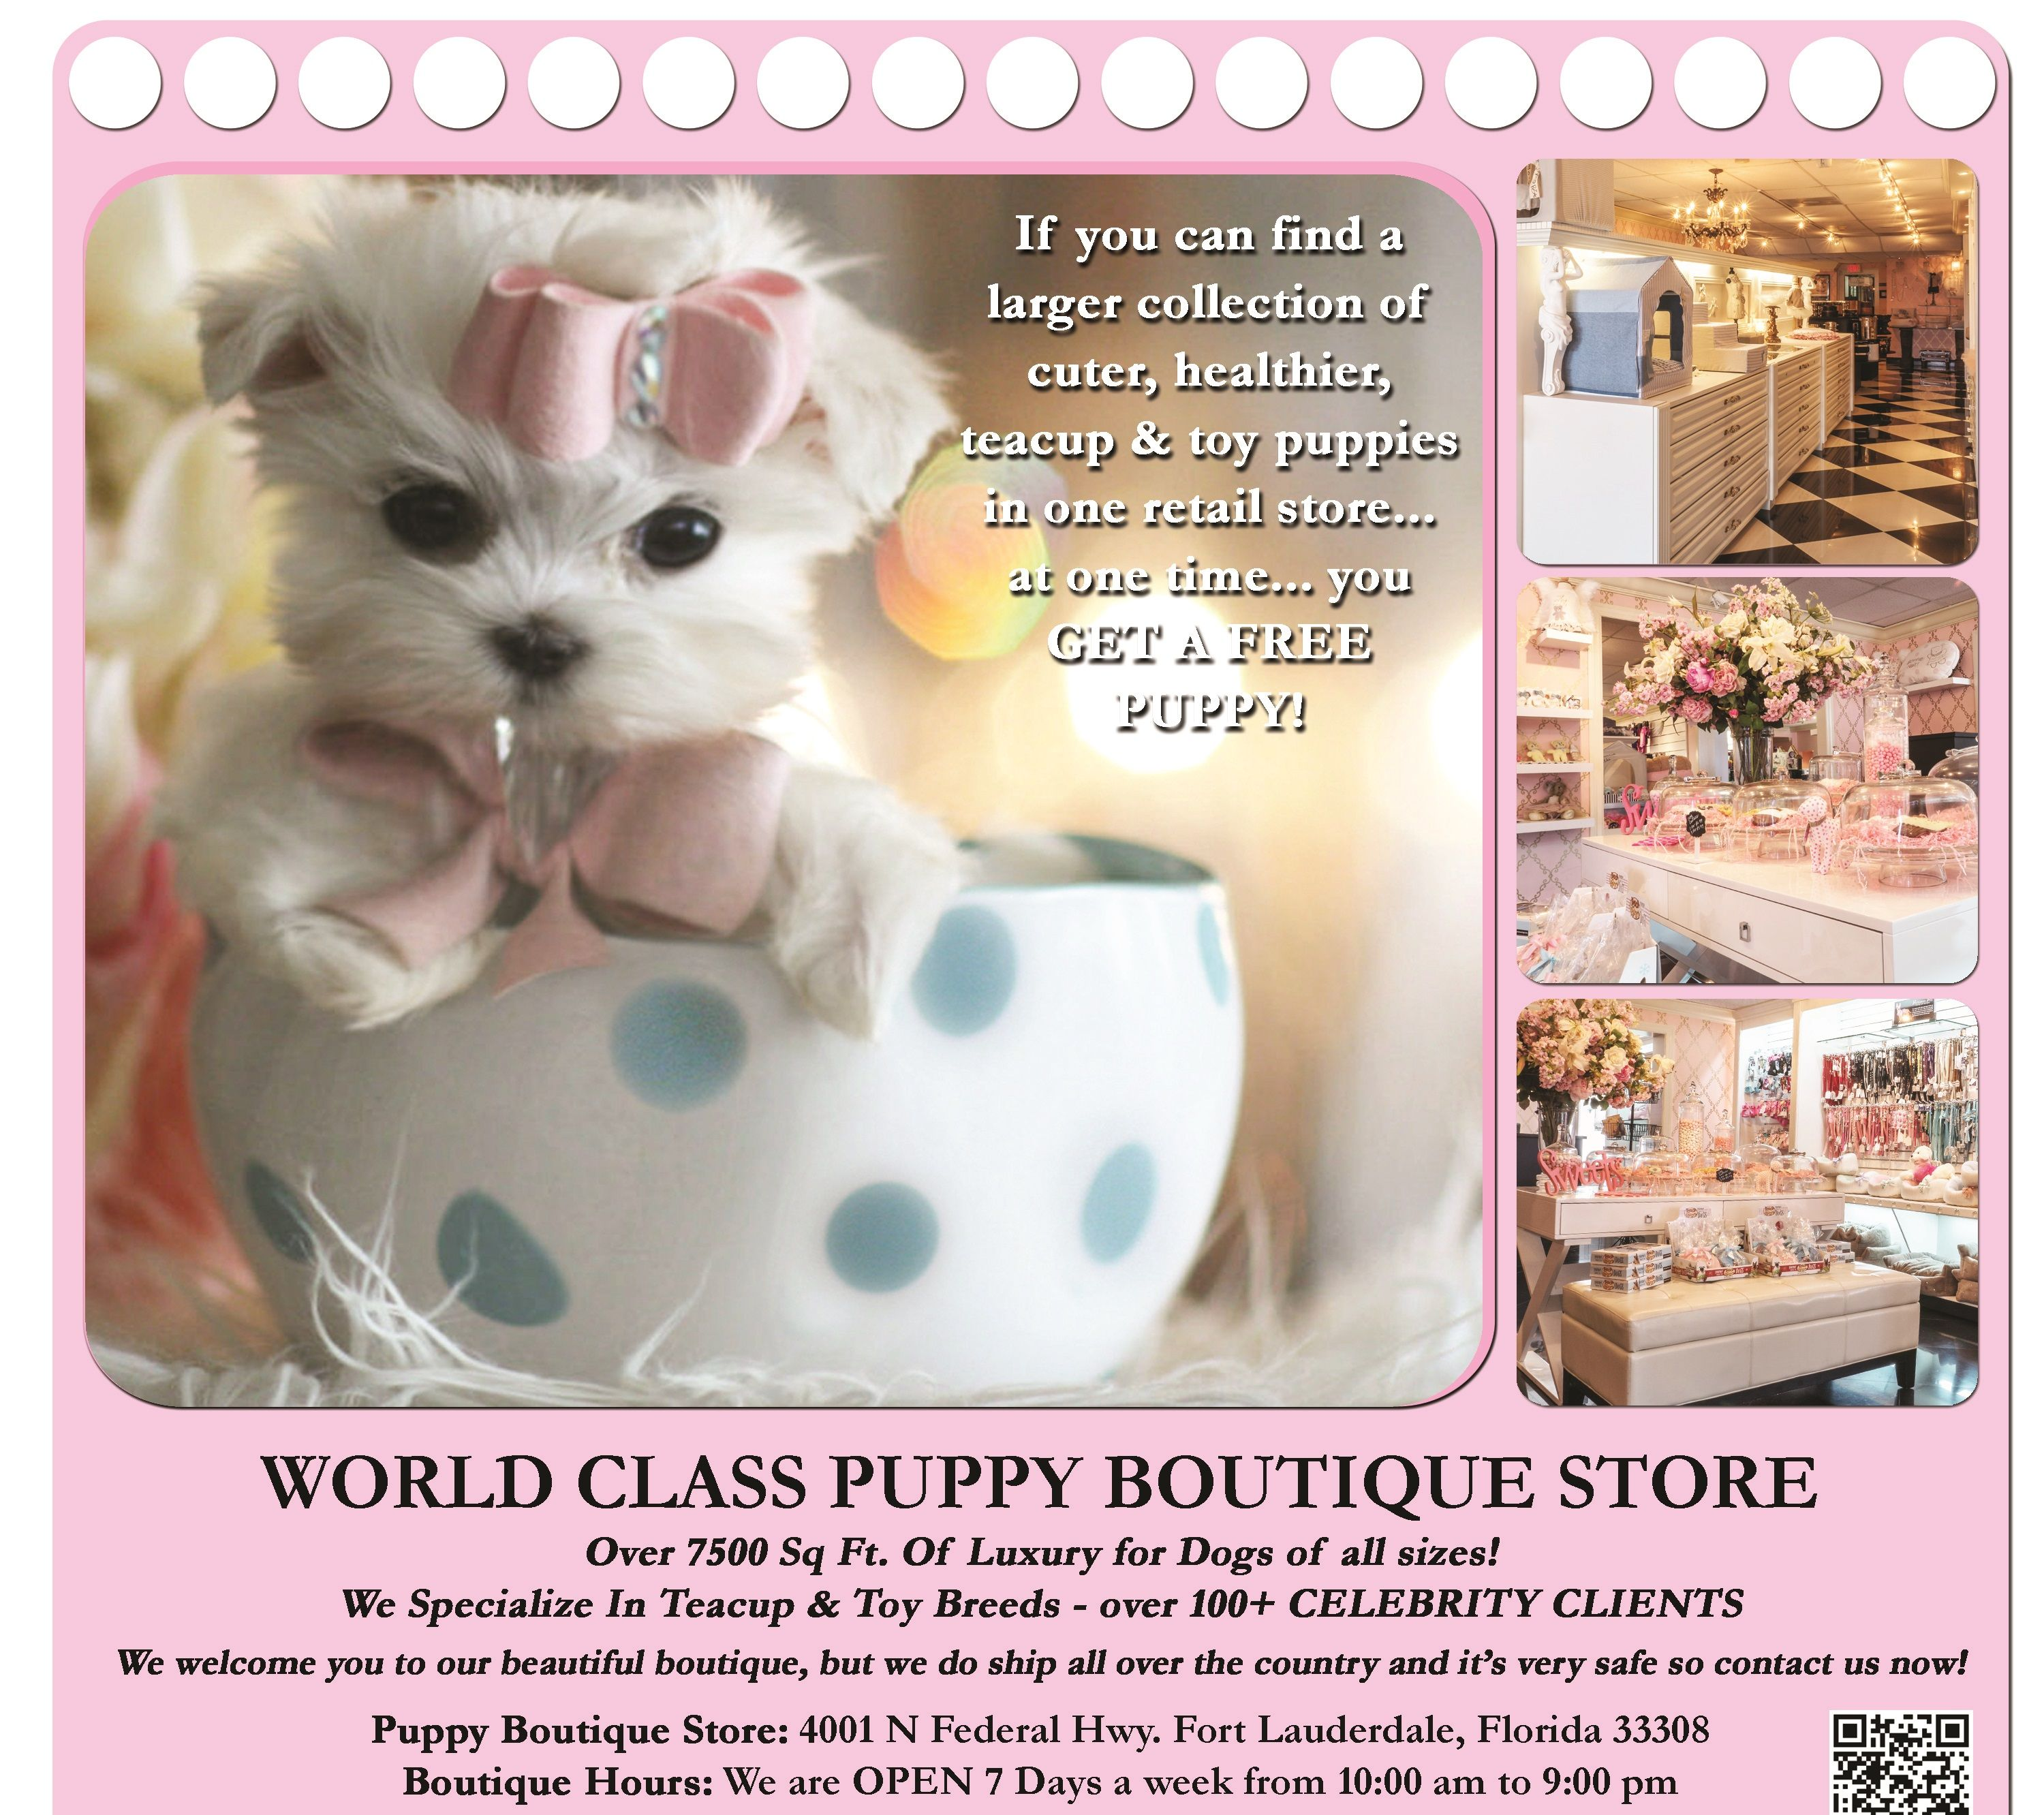 Teacup Puppies For Sale And Boutique And Teacup Yorkies Maltese Puppies For Sale Puppies For Sale Teacup Puppies For Sale